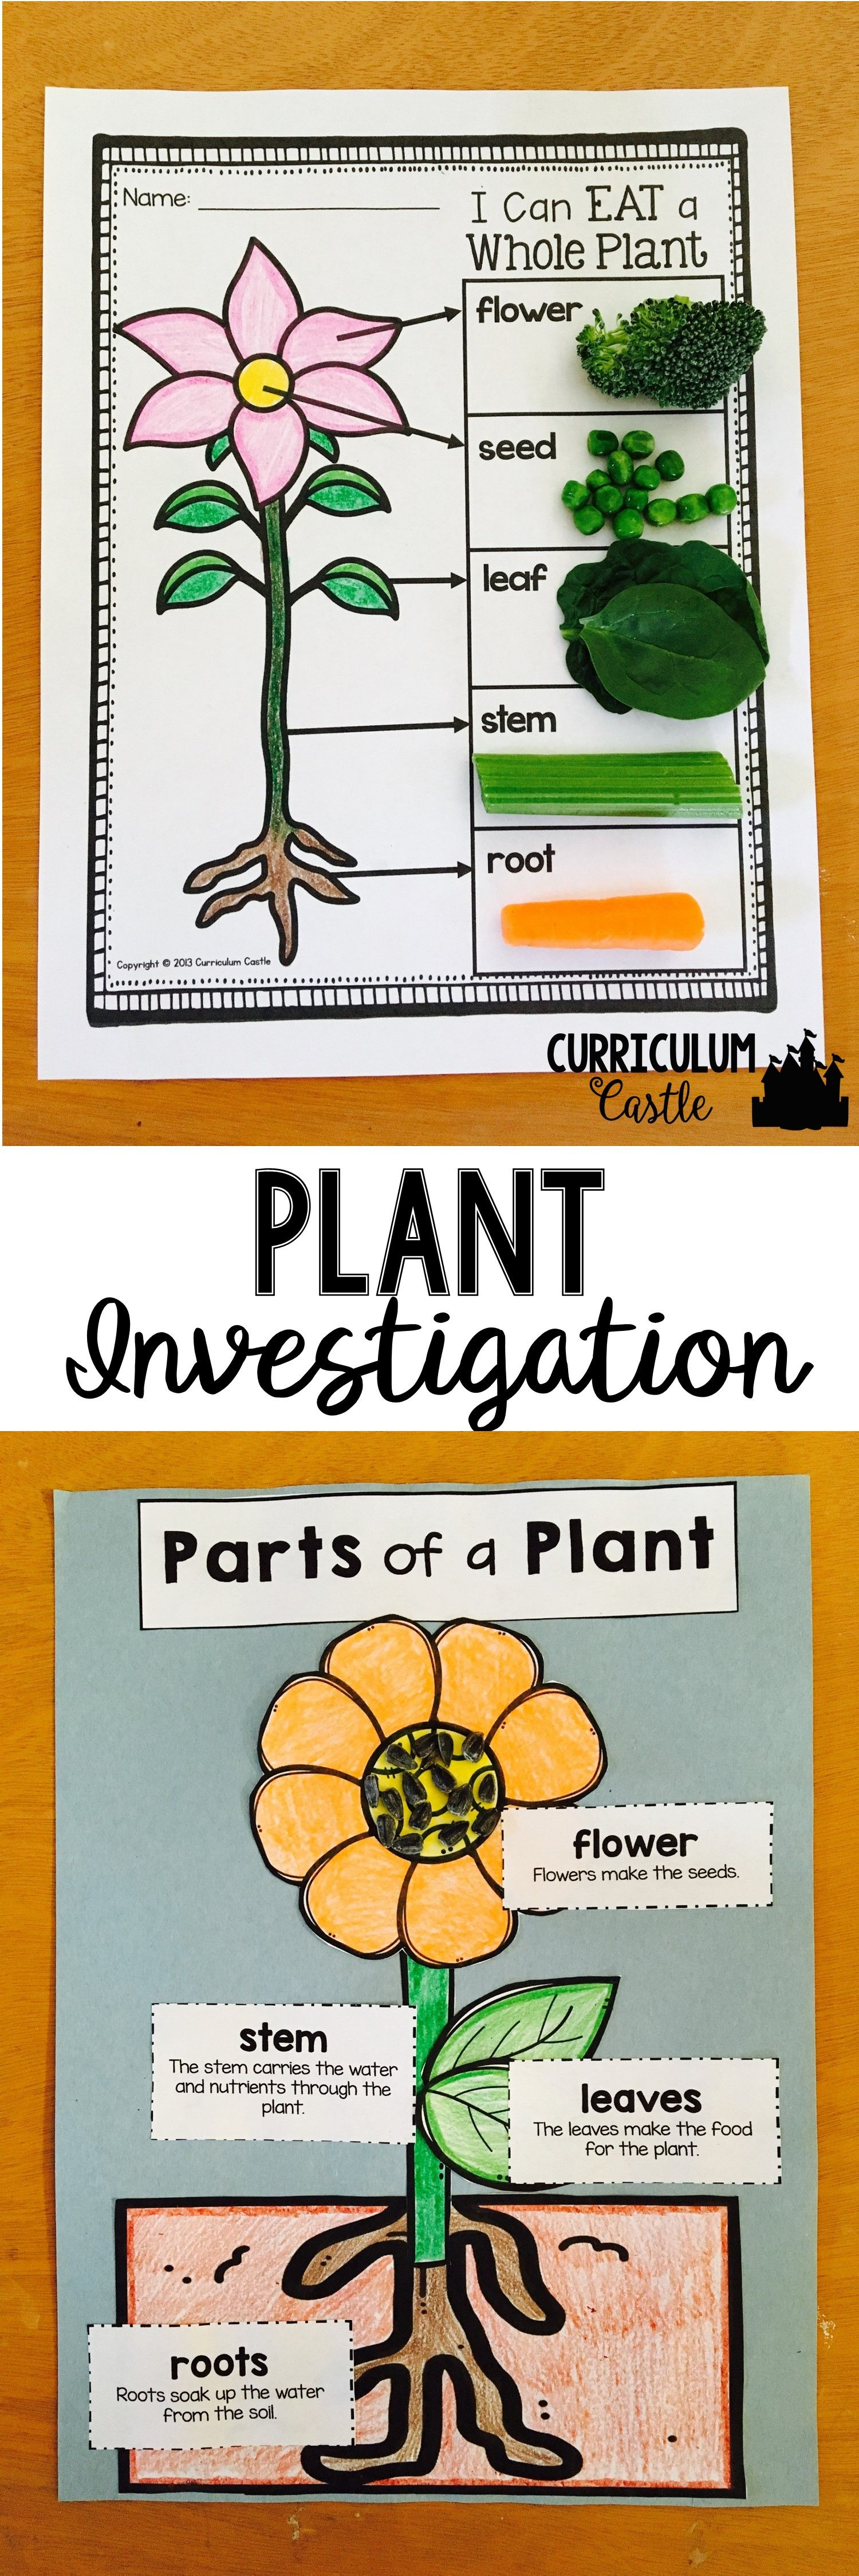 Plant Life Cycle And Investigation Parts Of A Plant Craft